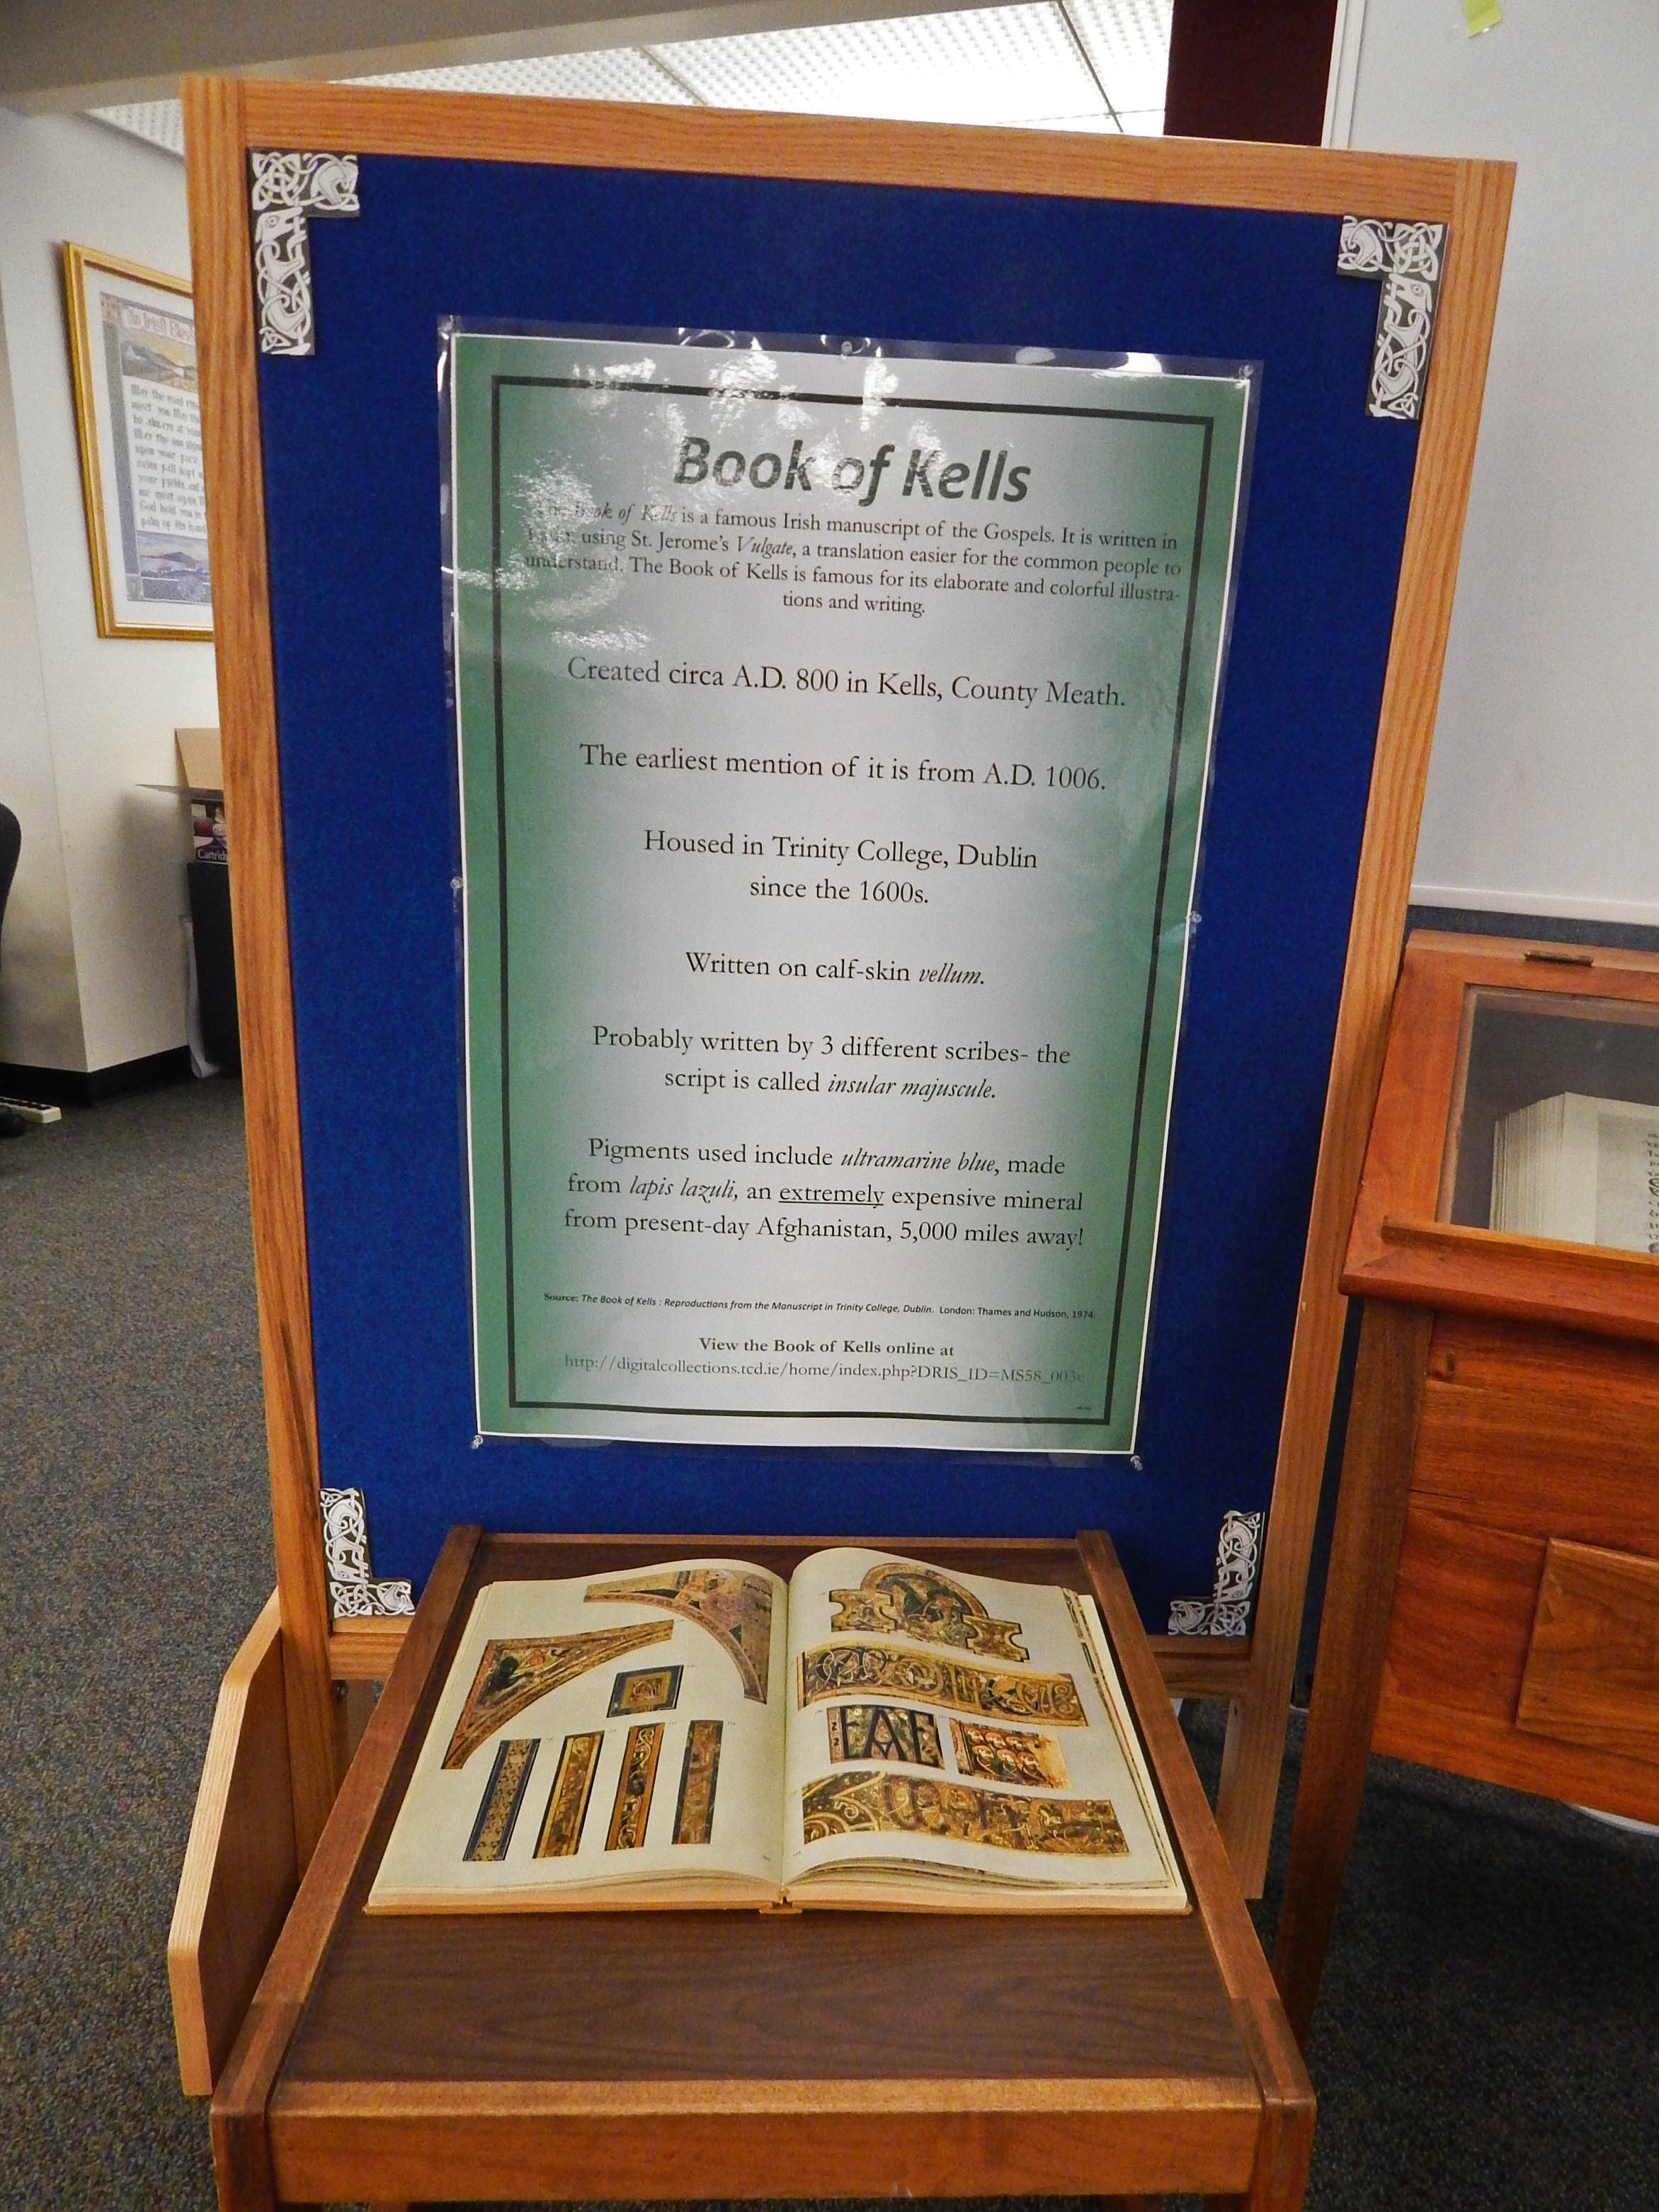 gumberg library displays the land of saints and book of kells facts